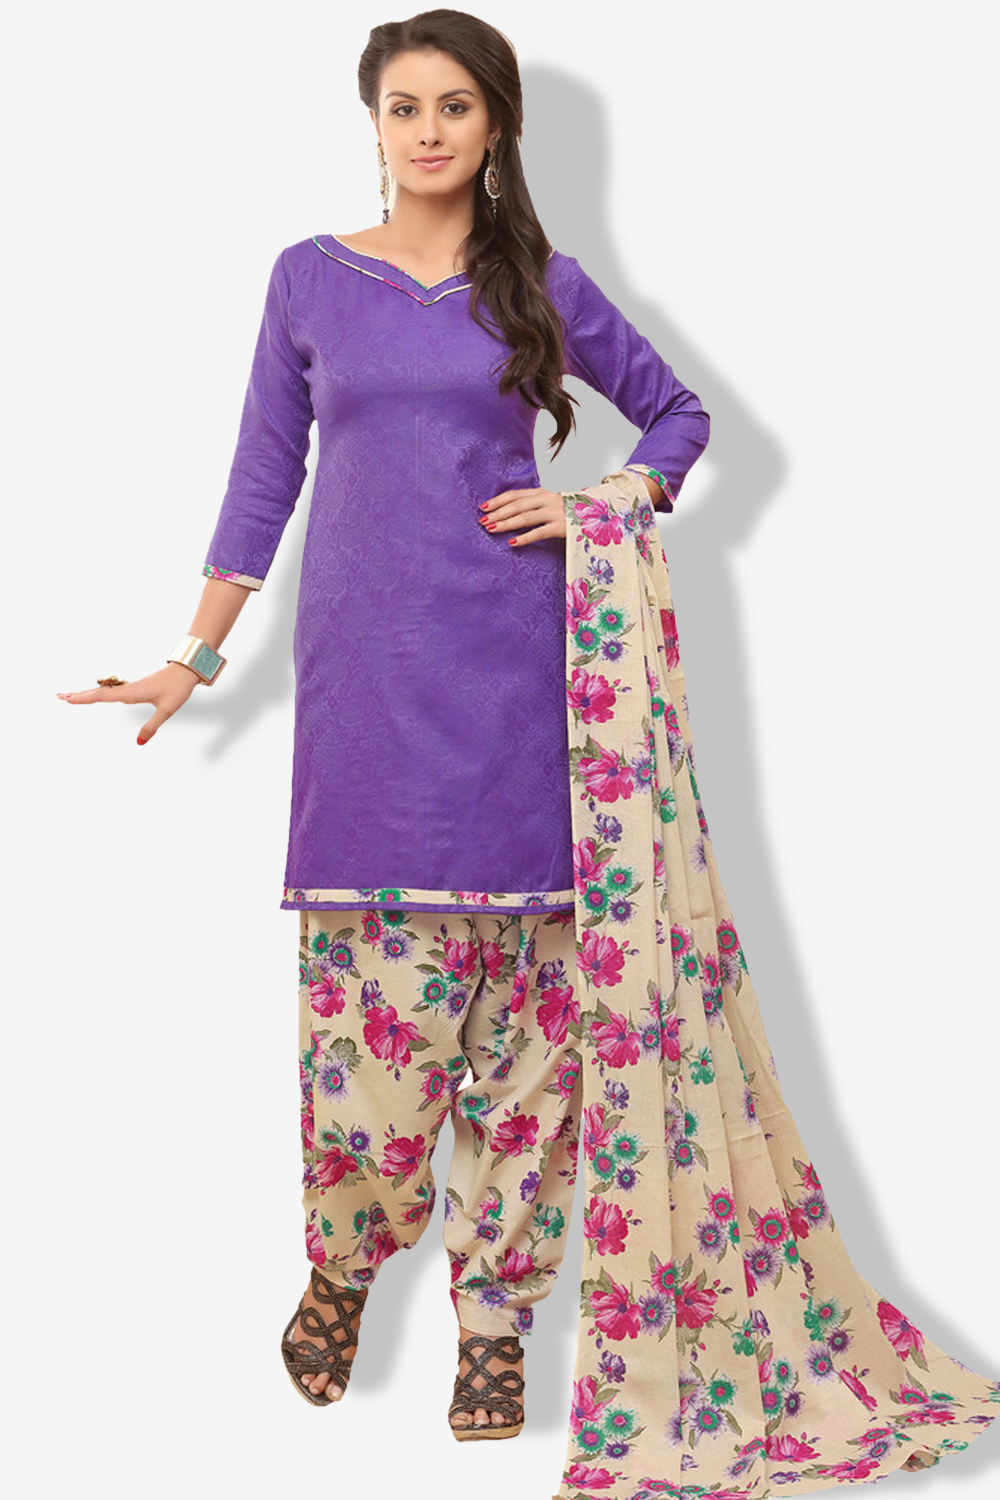 MINU and MANINI Suits Purple Cotton Salwar Suits Sets Dress Material Freesize